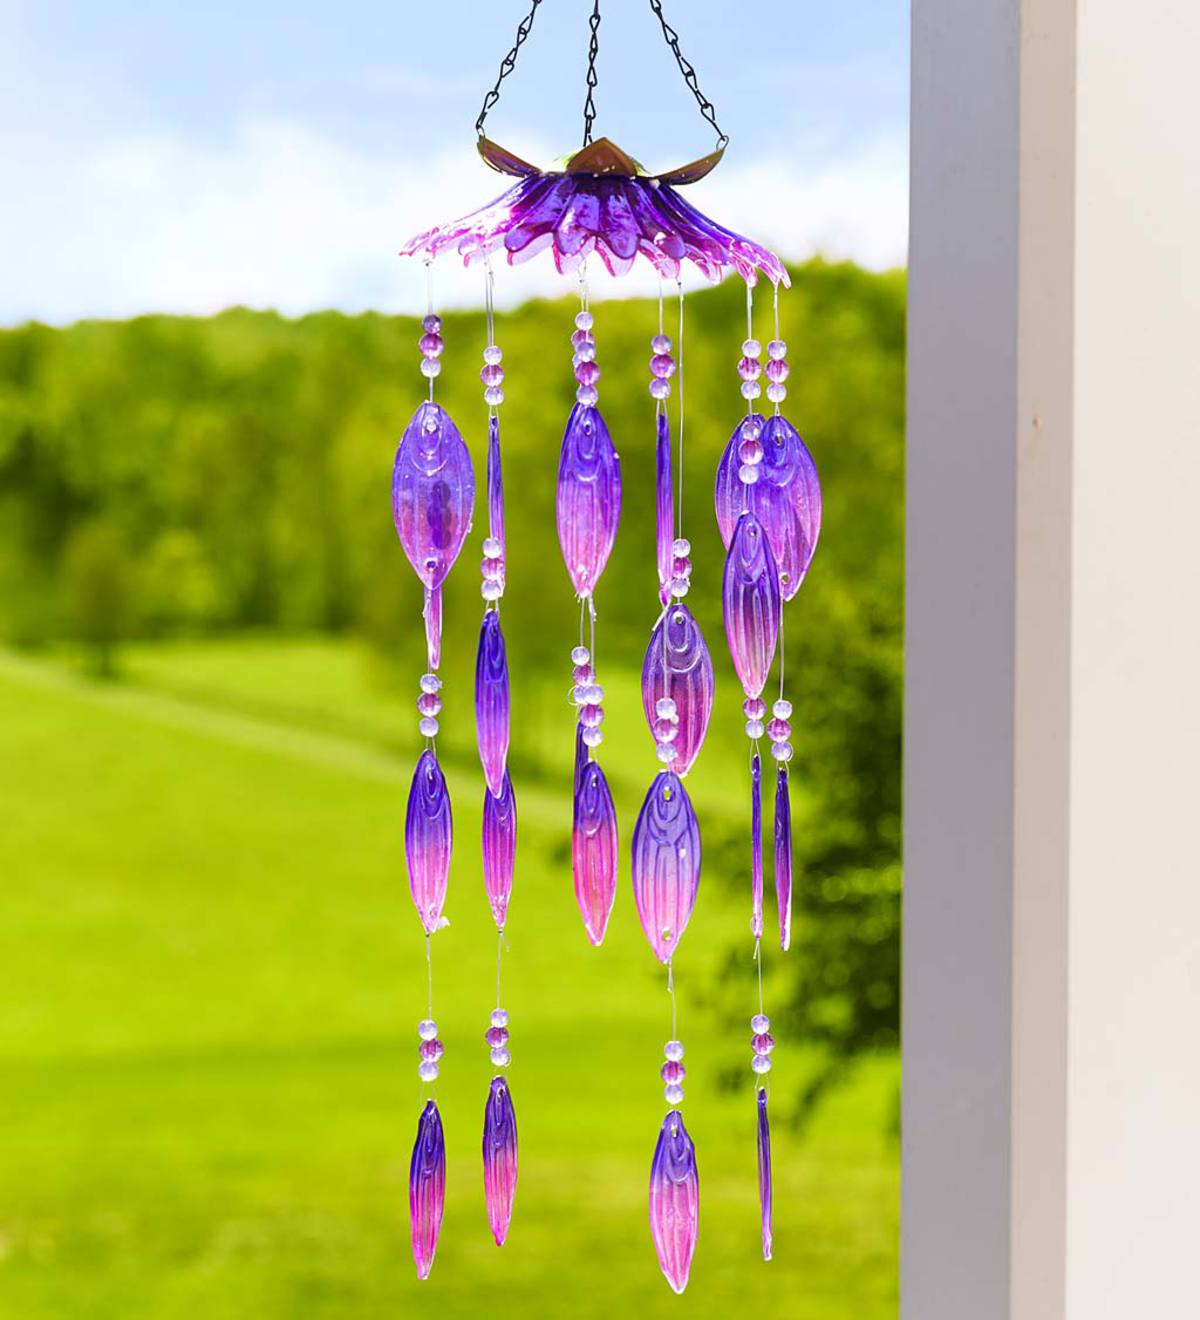 Colorful Glass Flower Petals Wind Chimes - Pink